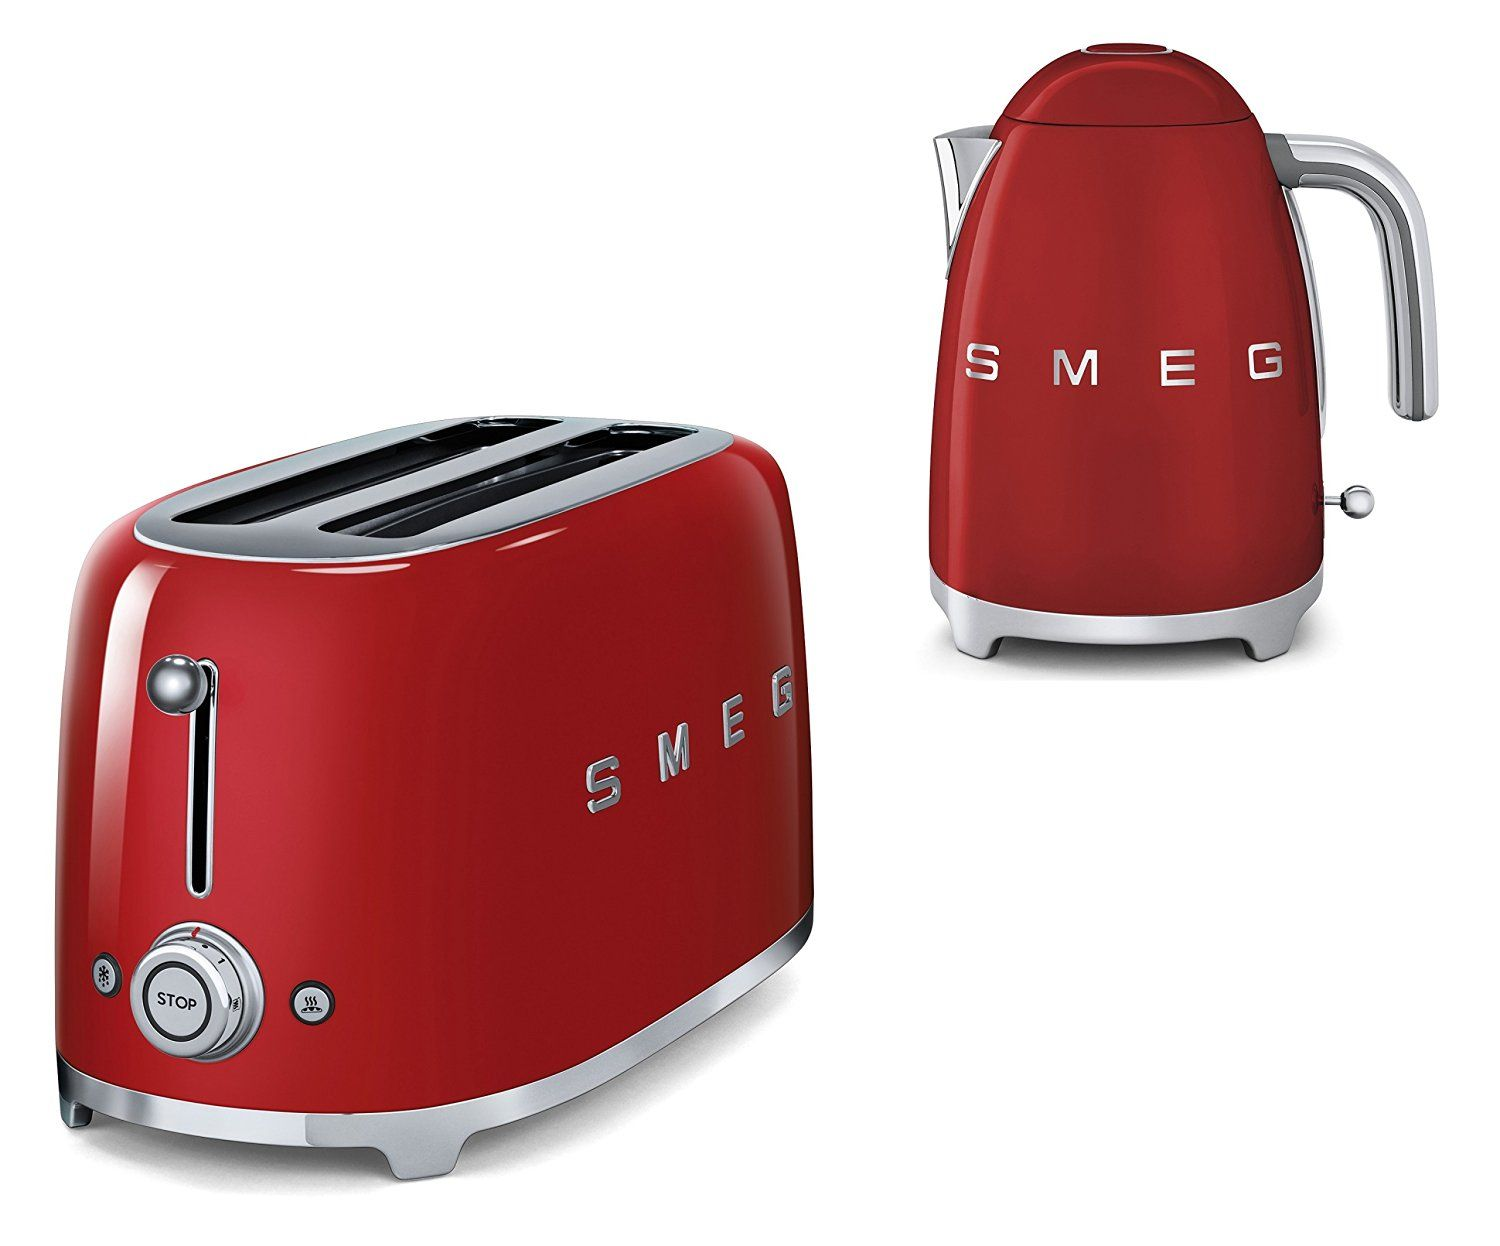 SMEG TOASTER 4 SLICES 50'S STYLE RED